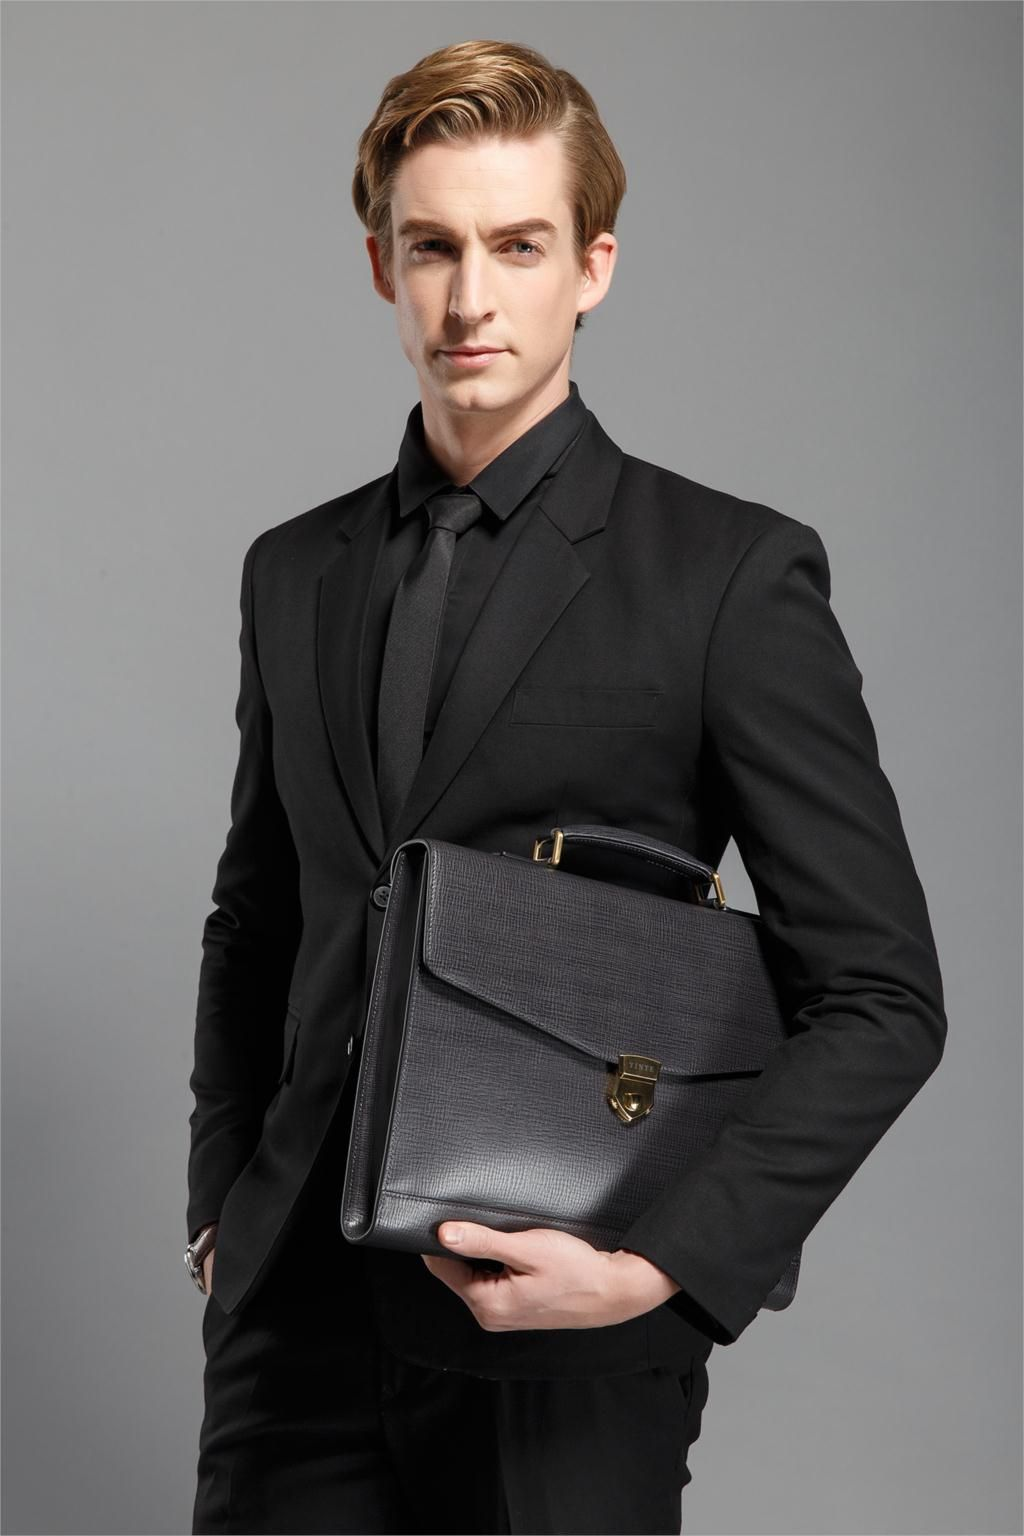 8898097e8daa Aliexpress.com   Buy New Fashion Men Leather Briefcase High Quality Laptop  Briefcase Office Bag Lawyer Messenger Handbag Teacher Business Portfolio  from ...